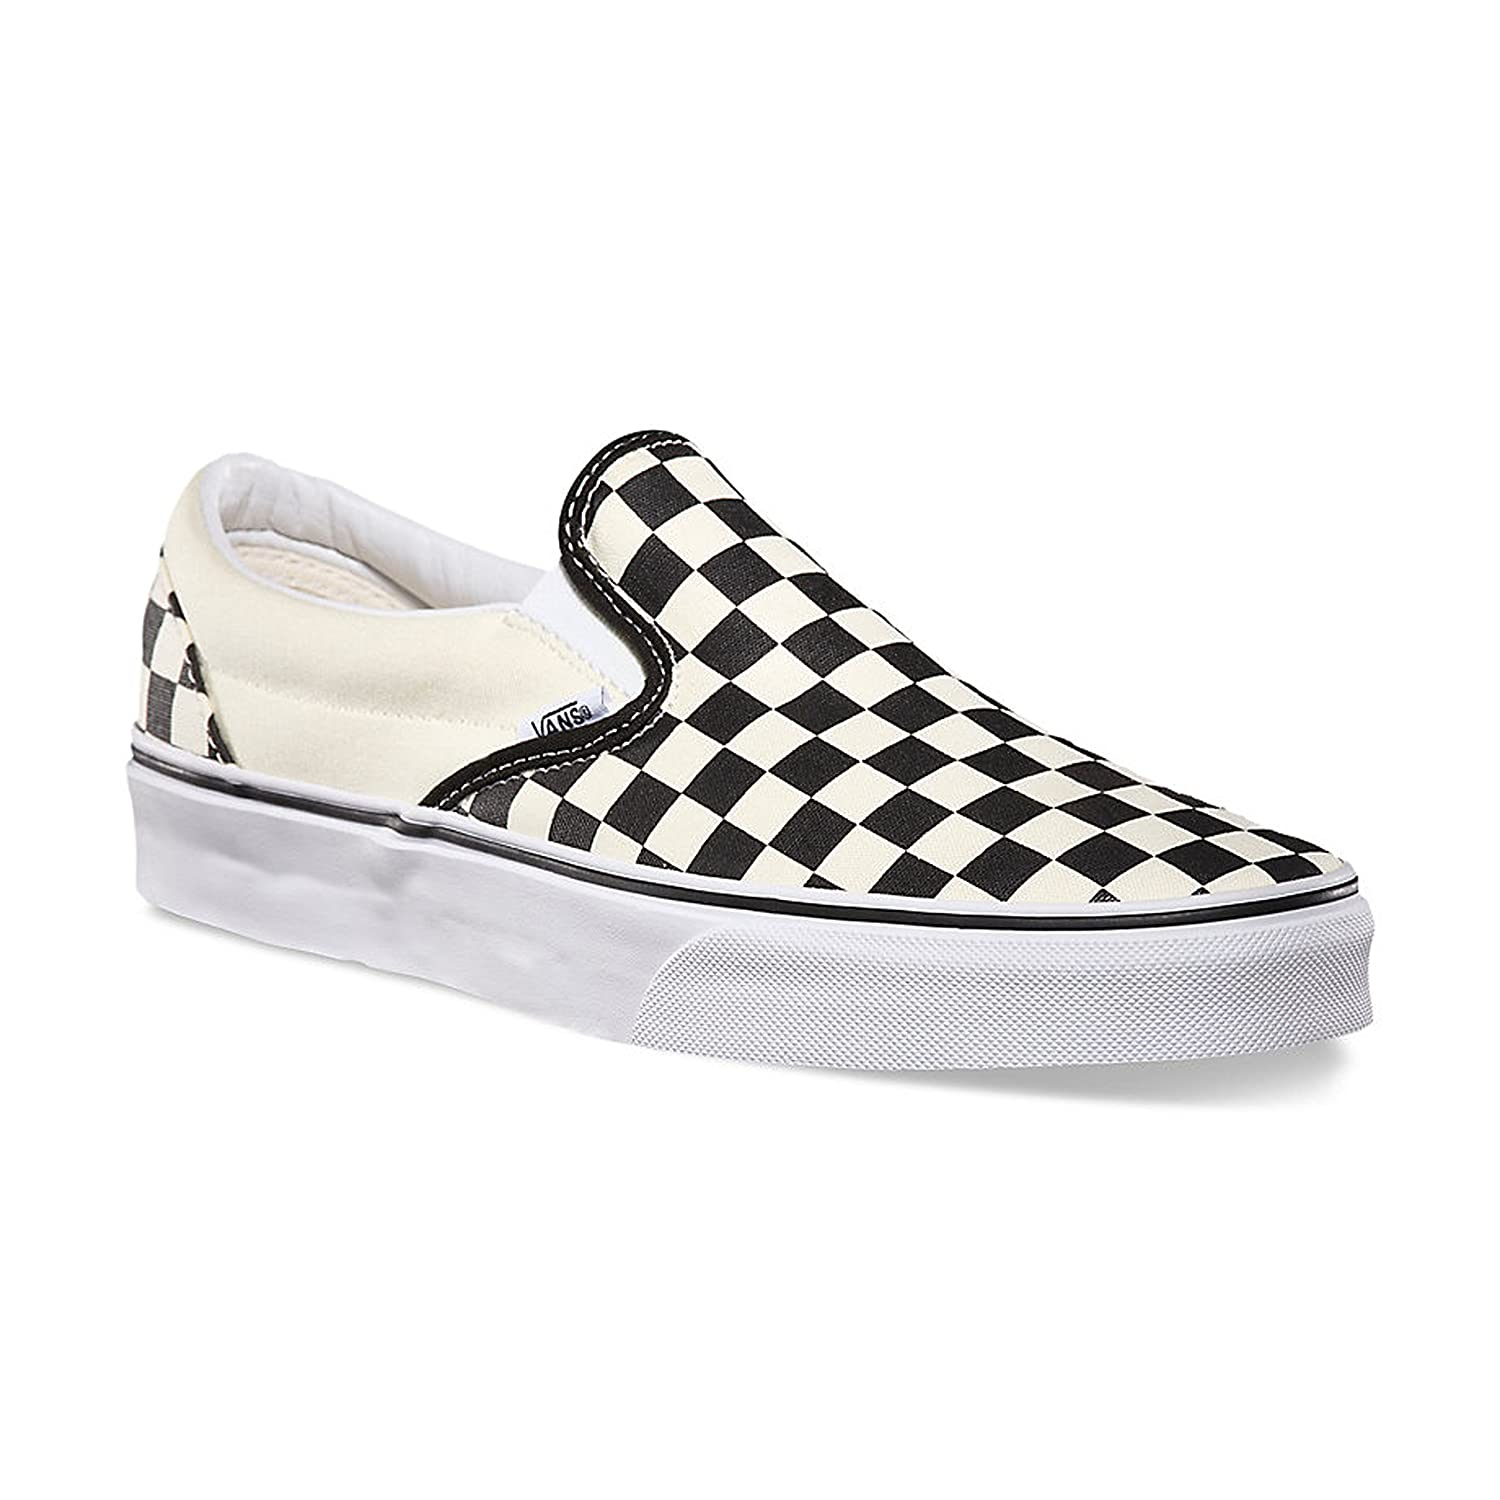 [バンズ] VANS スニーカー Classic Slip-on B0753ZZDS1 14.5 B(M) US Women / 13 D(M) US Men|Black Off White Checkerboard Black Off White Checkerboard 14.5 B(M) US Women / 13 D(M) US Men